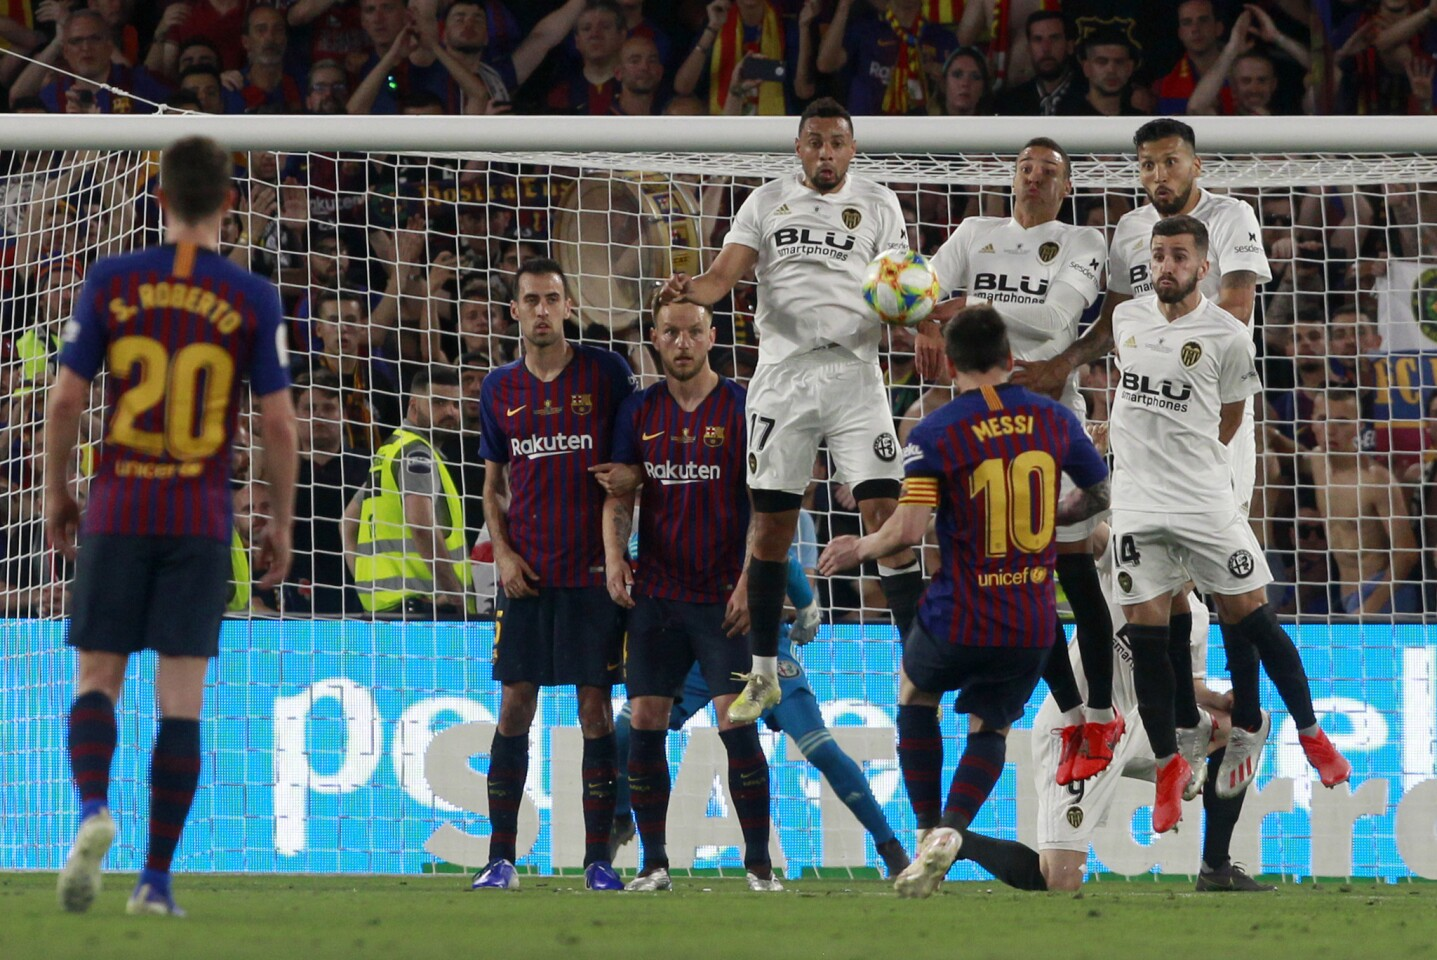 Barcelona forward Lionel Messi takes a free kick during the Copa del Rey soccer match final between Valencia CF and FC Barcelona at the Benito Villamarin stadium in Seville, Spain, Saturday. 25, 2019.